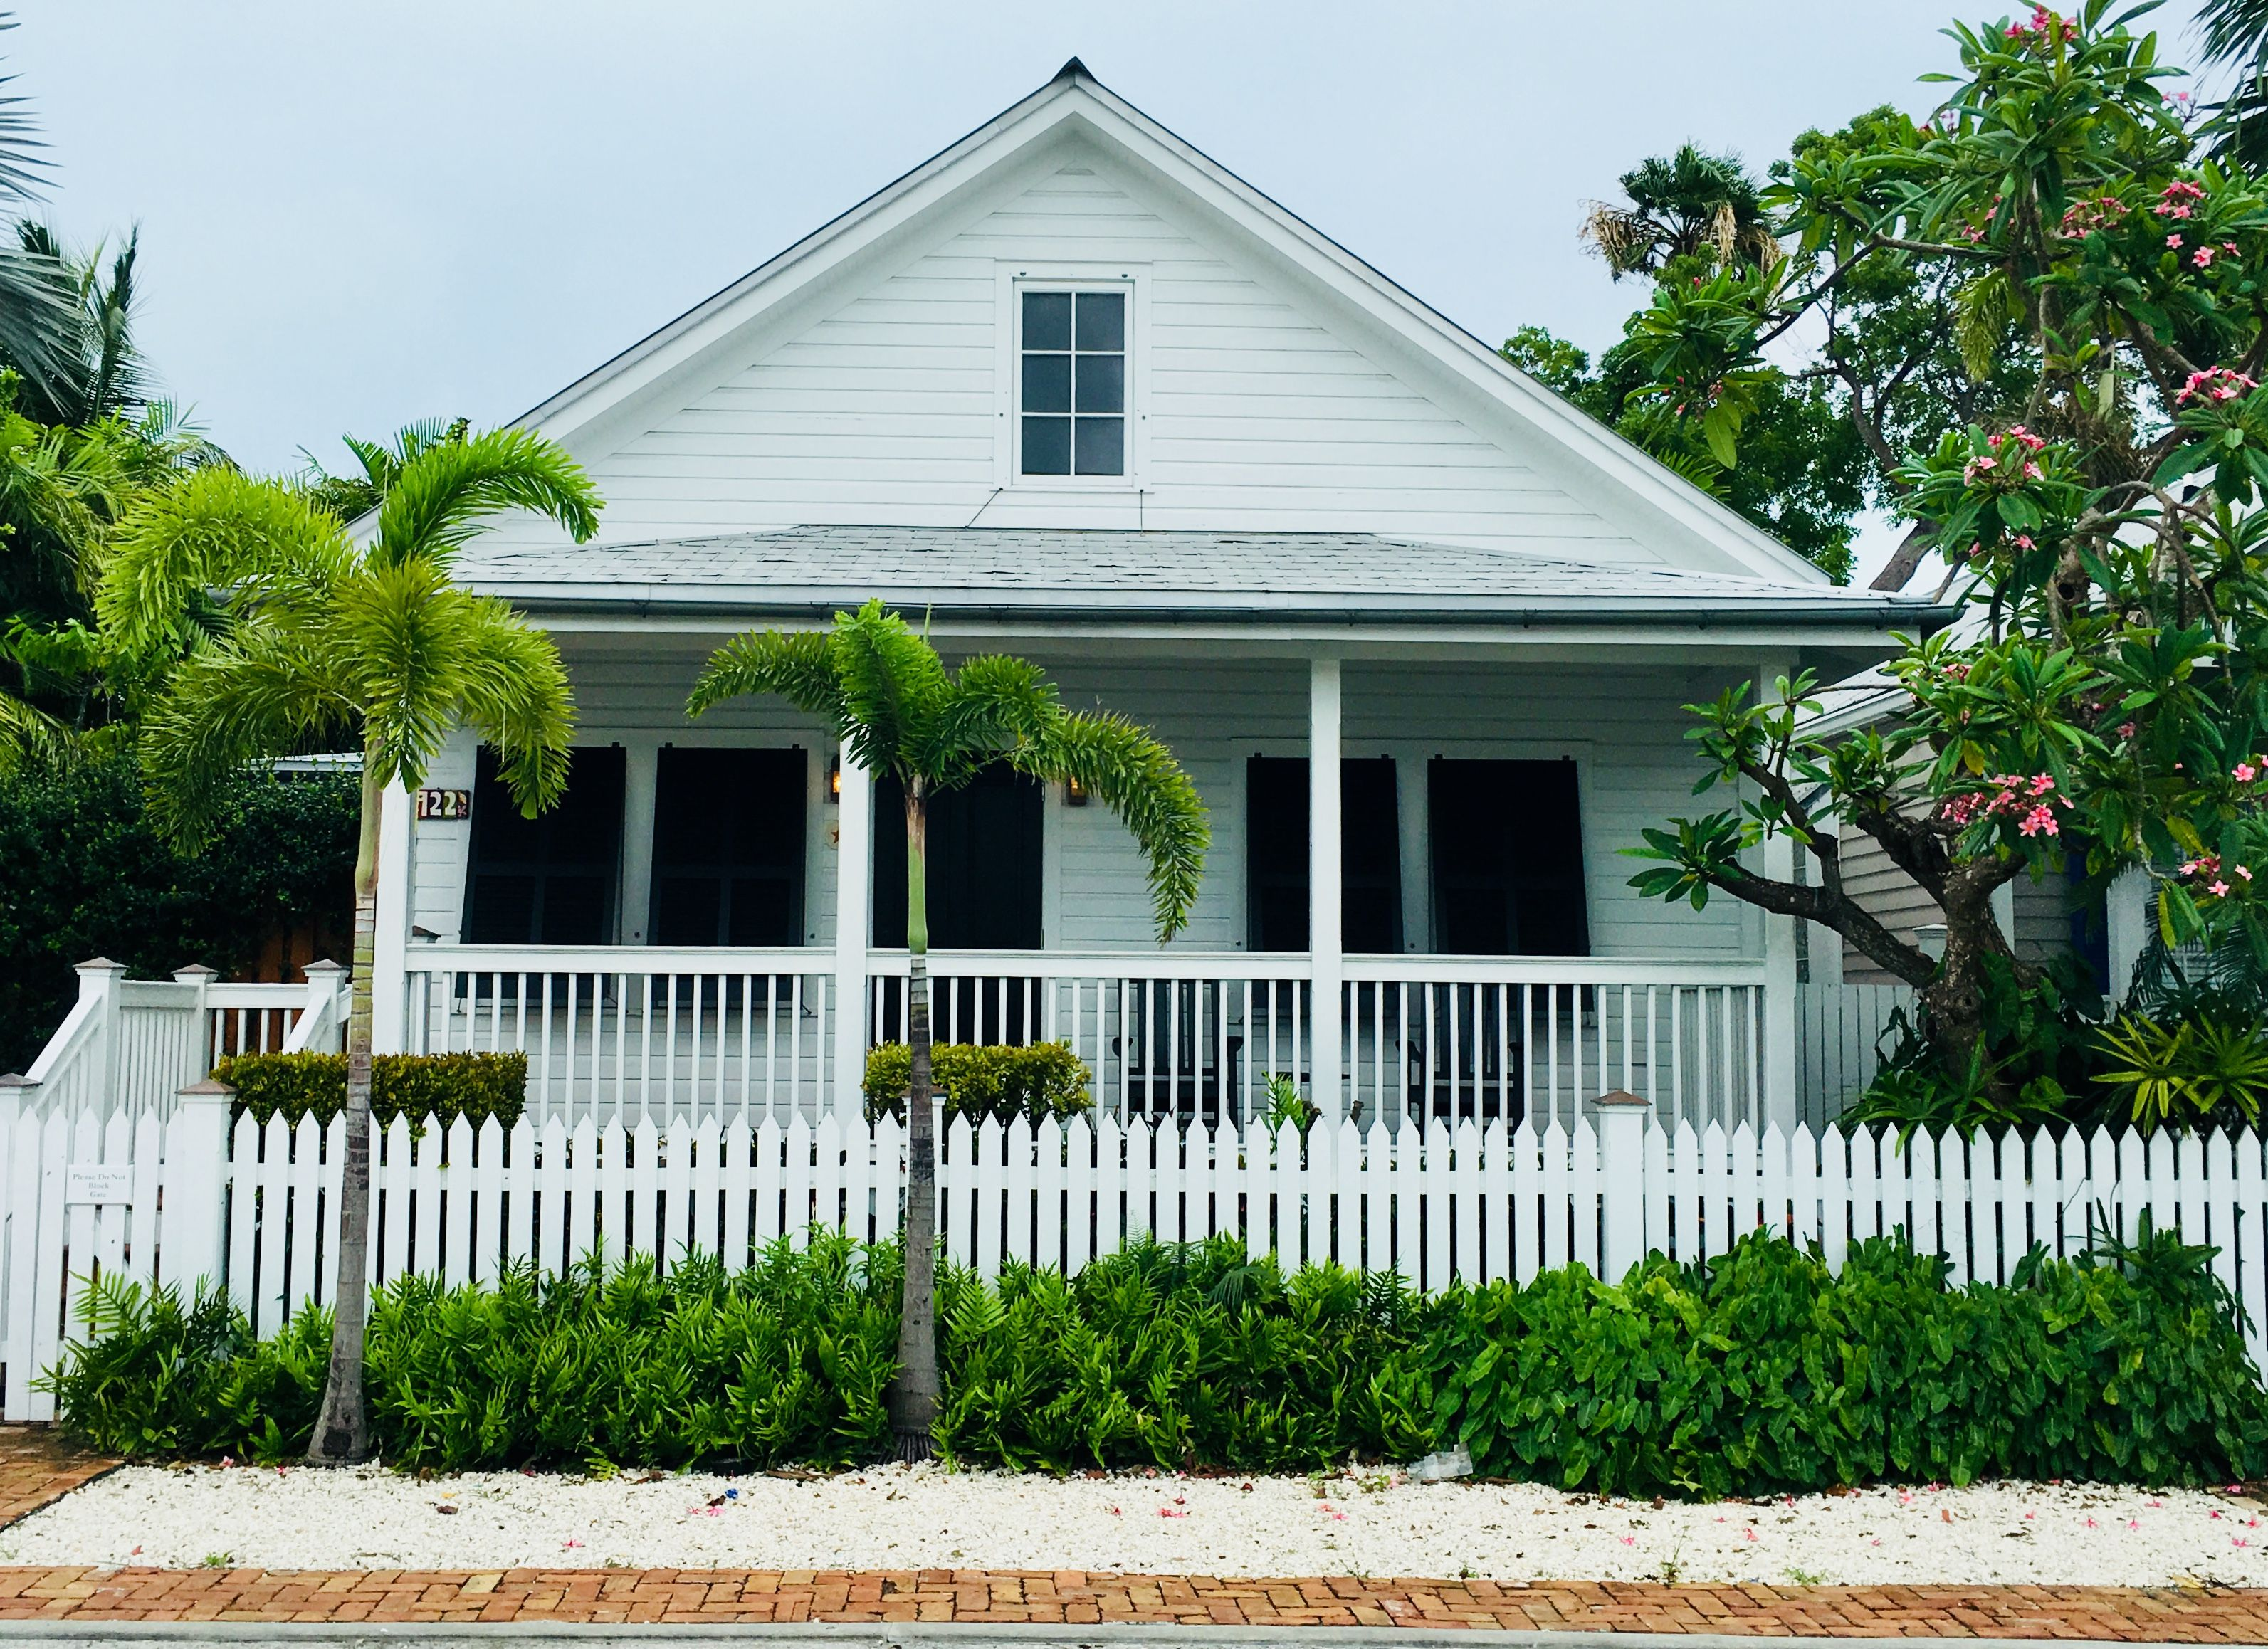 312 23rd St Houston Tx 77008 Photo Charming 1920s: Key West Cottage Living In The Heart Of Old Town Key West